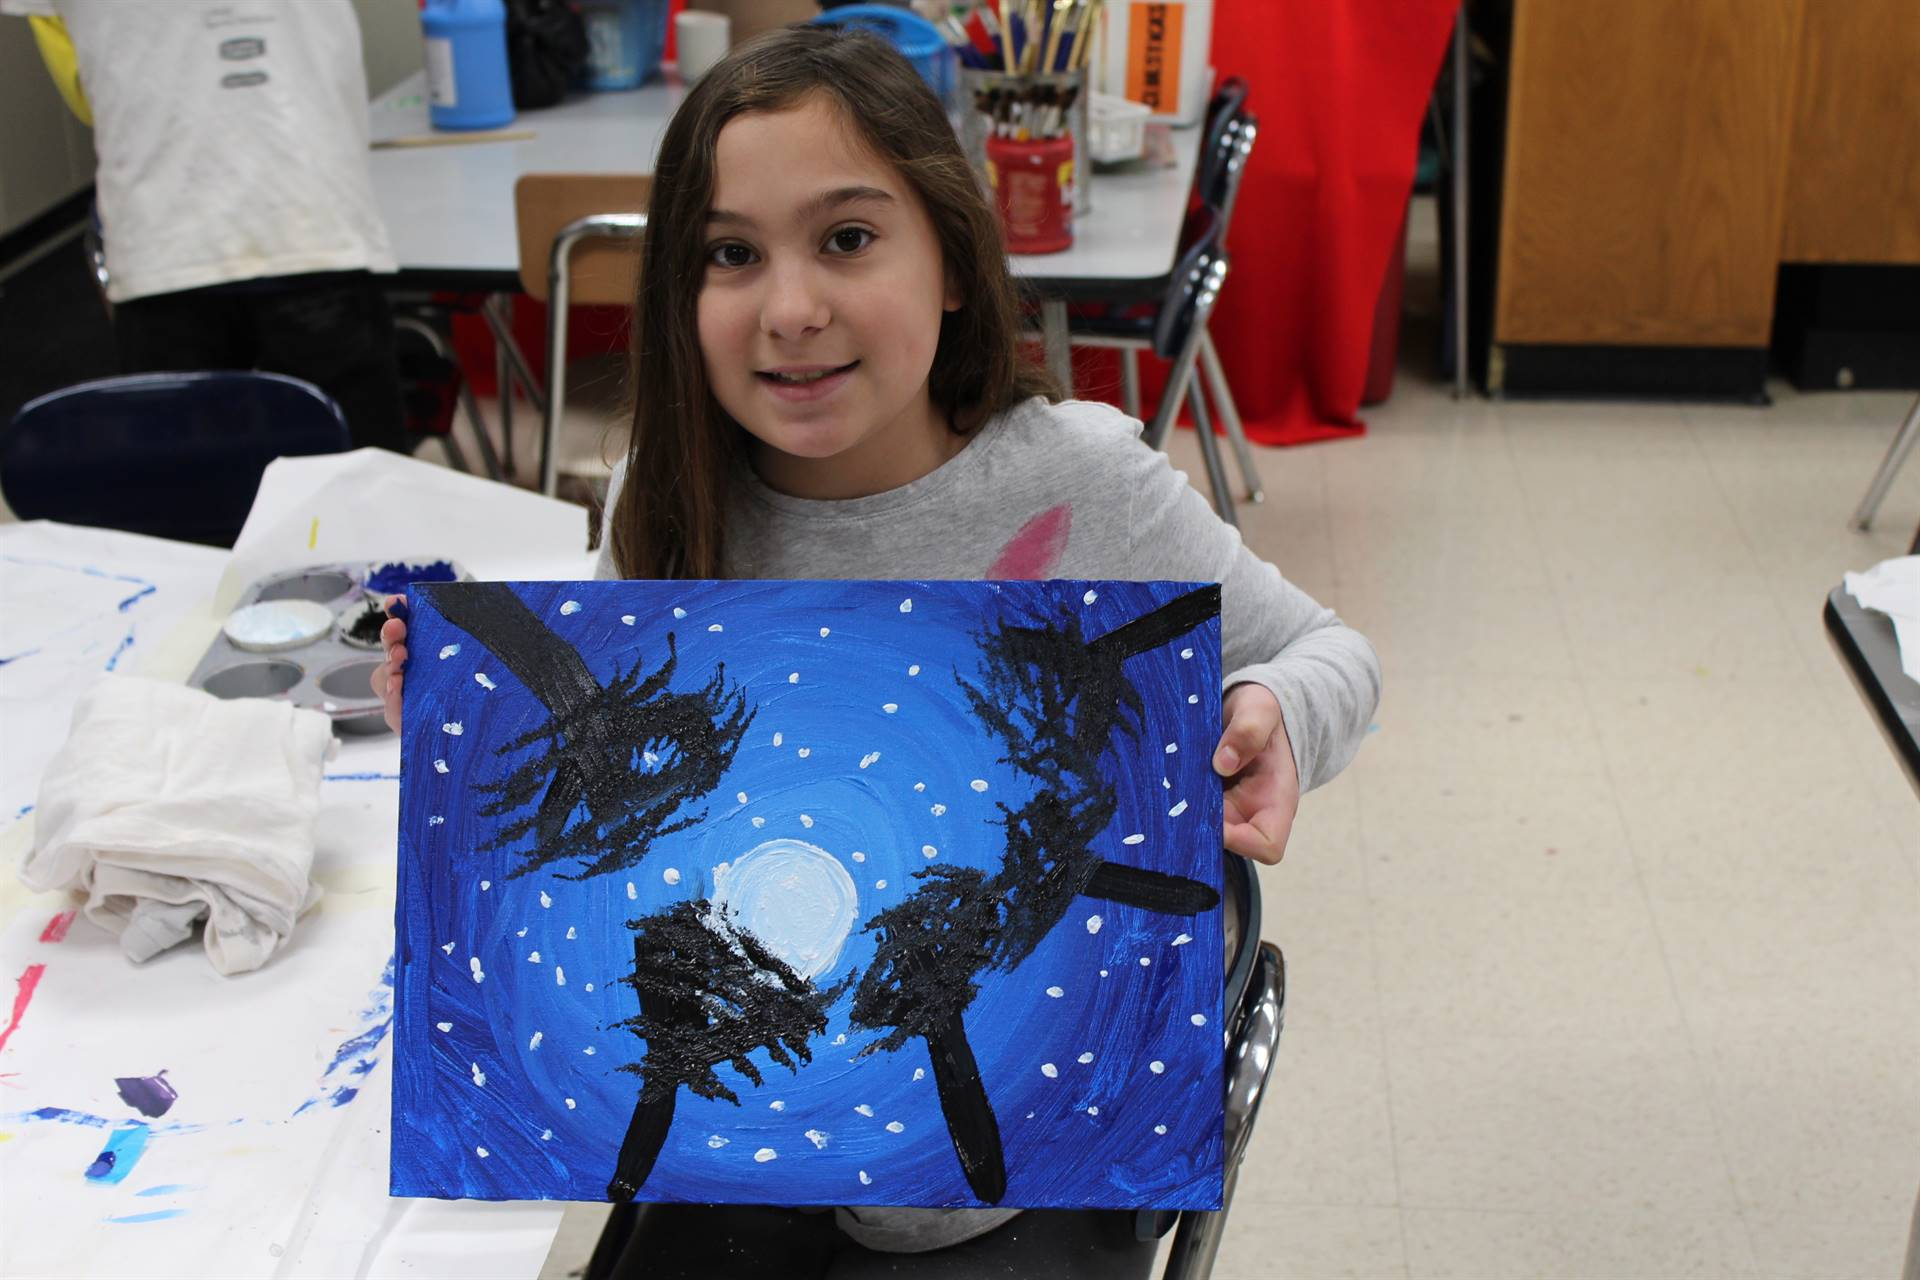 Student holding up painting